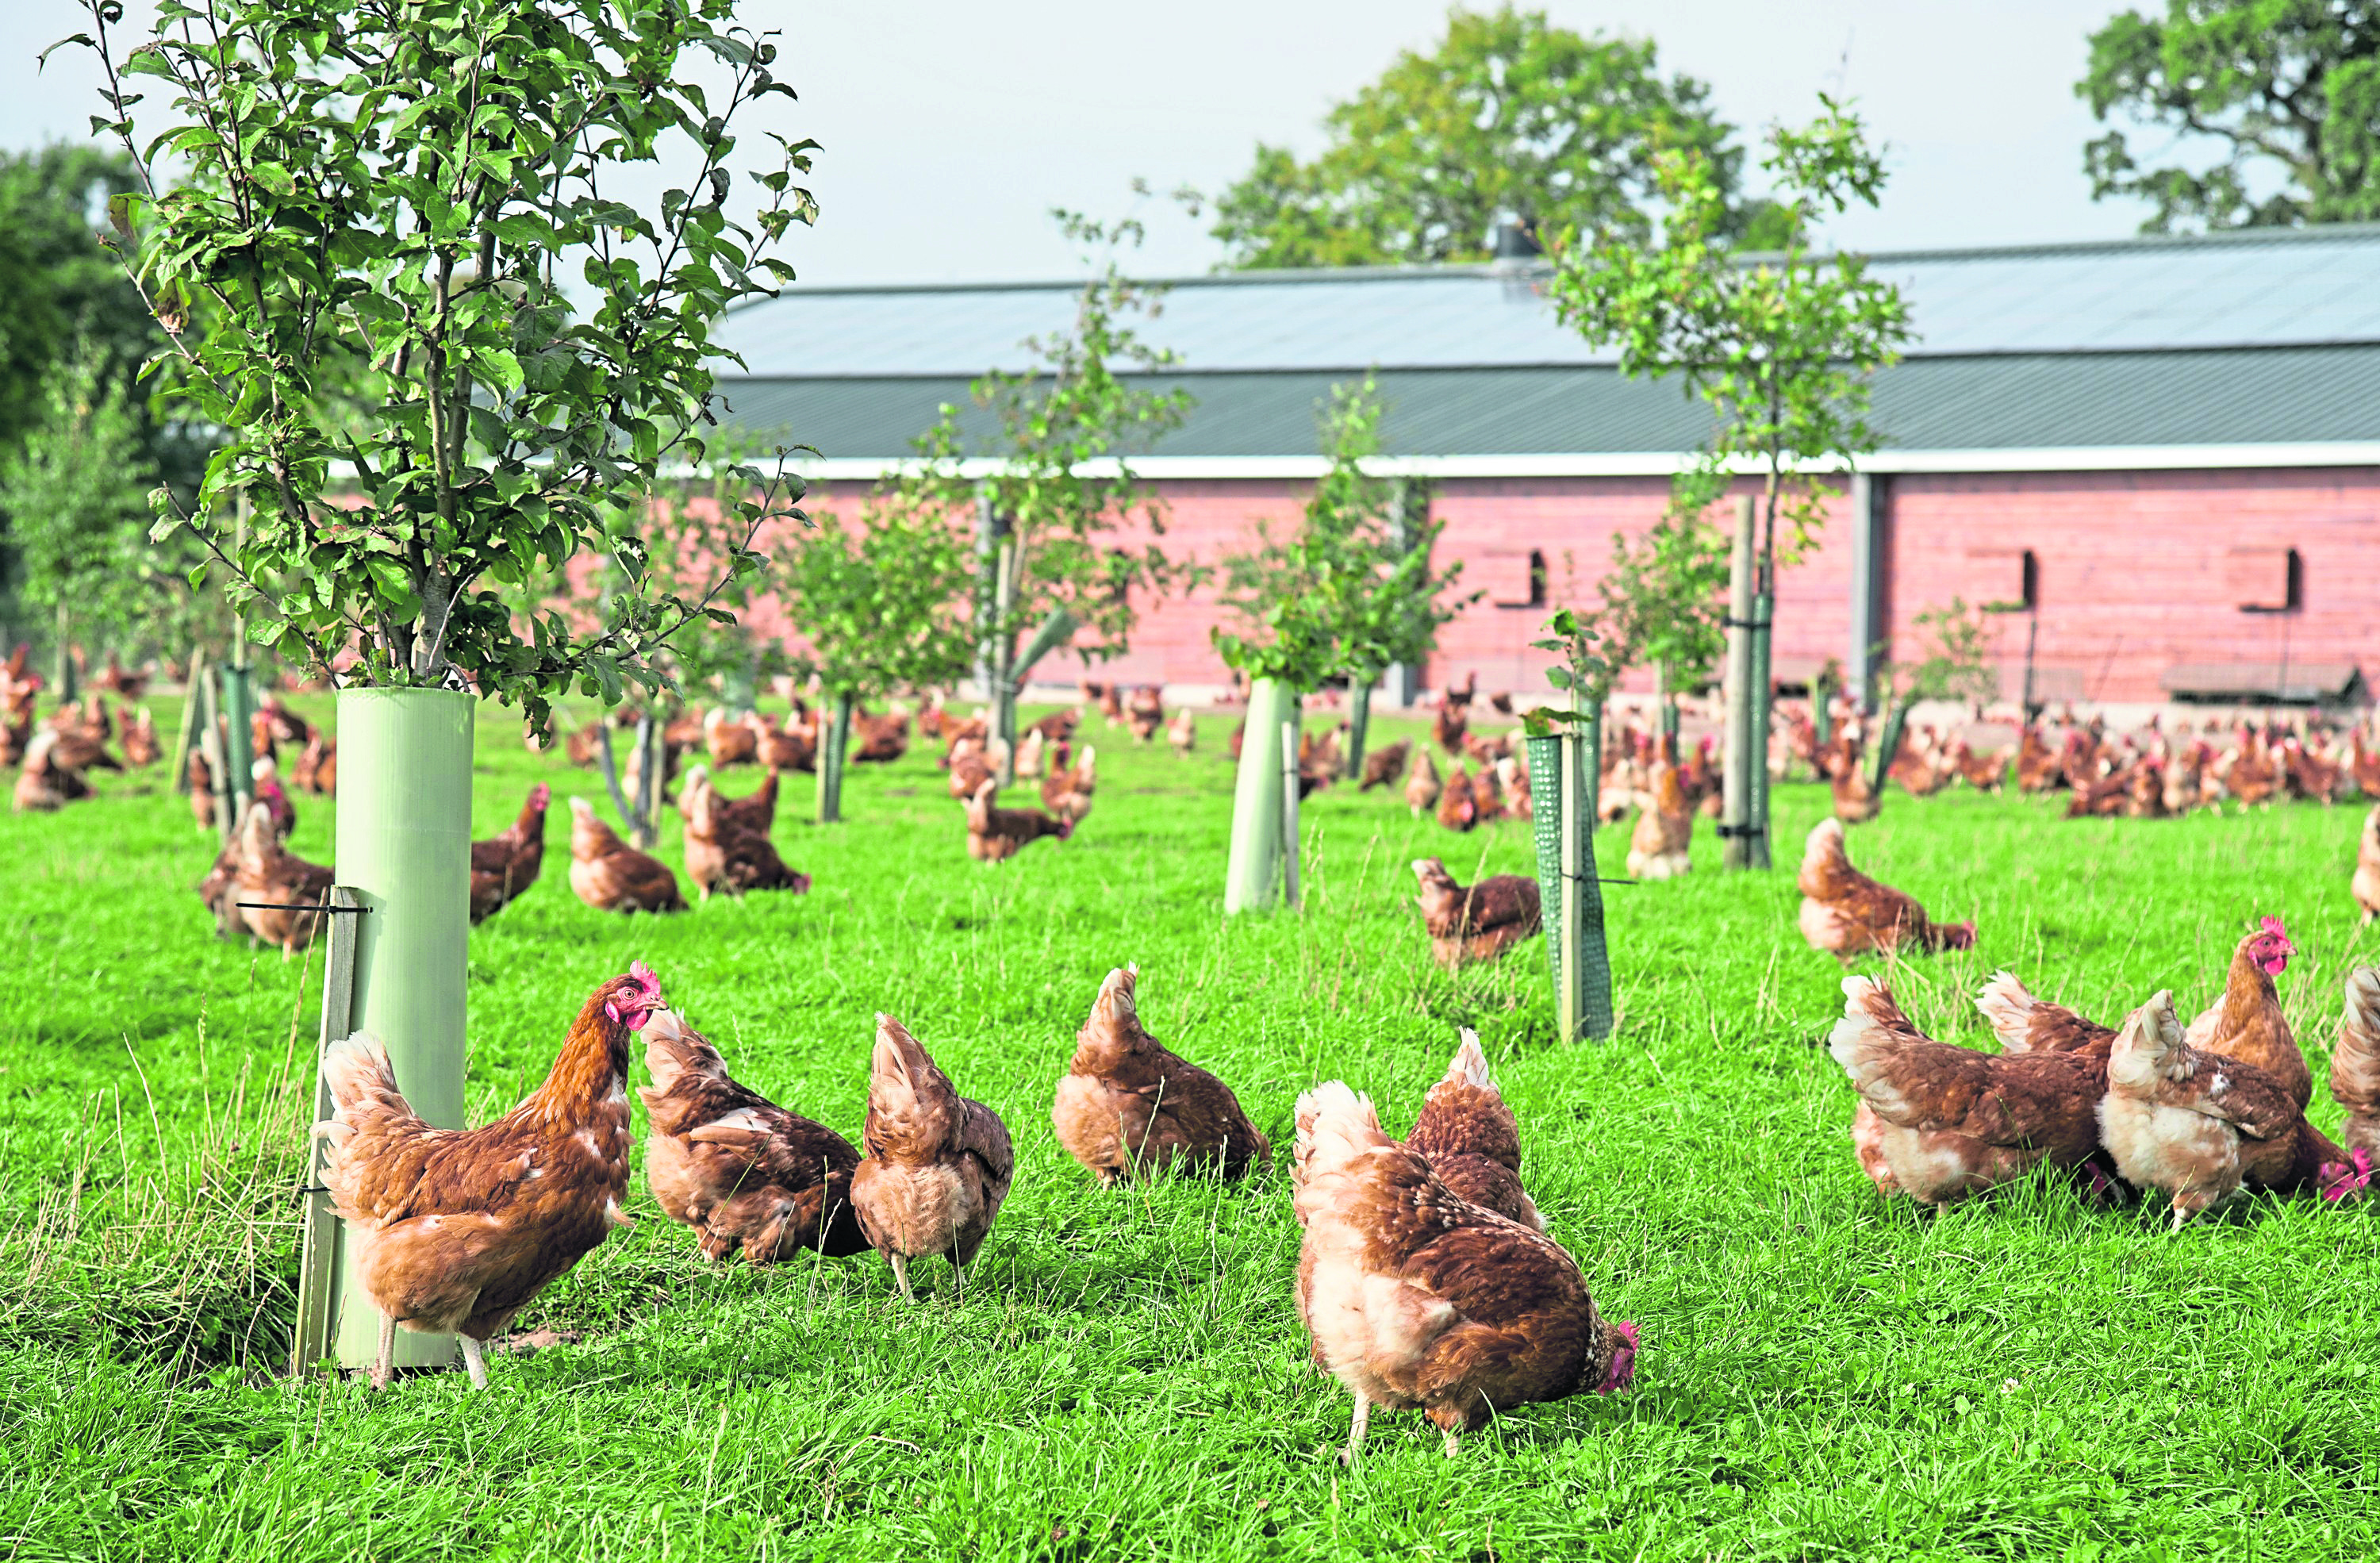 The producers must provide high welfare conditions including outside access.    free range eggs  As British Egg Week 2016 gets underway, a OnePoll survey has shown that 78% of UK shoppers who buy free range eggs are happy to pay a premium for them.  Even Brits who usually buy a value egg agree that free range eggs should be priced higher than those produced by birds which don't go outside.